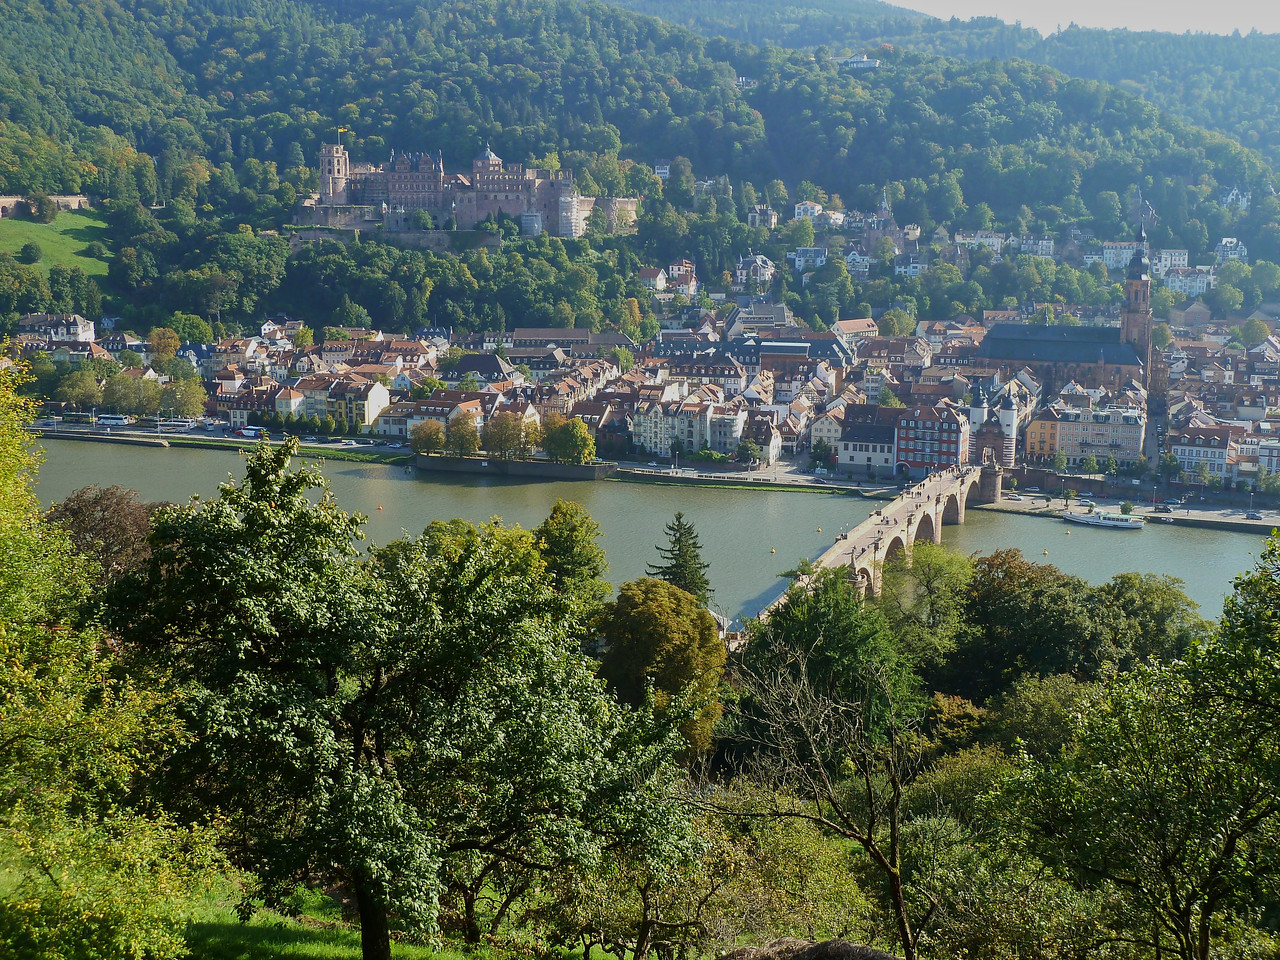 View of old Heidelberg and castle from the Philosopher's Trail!